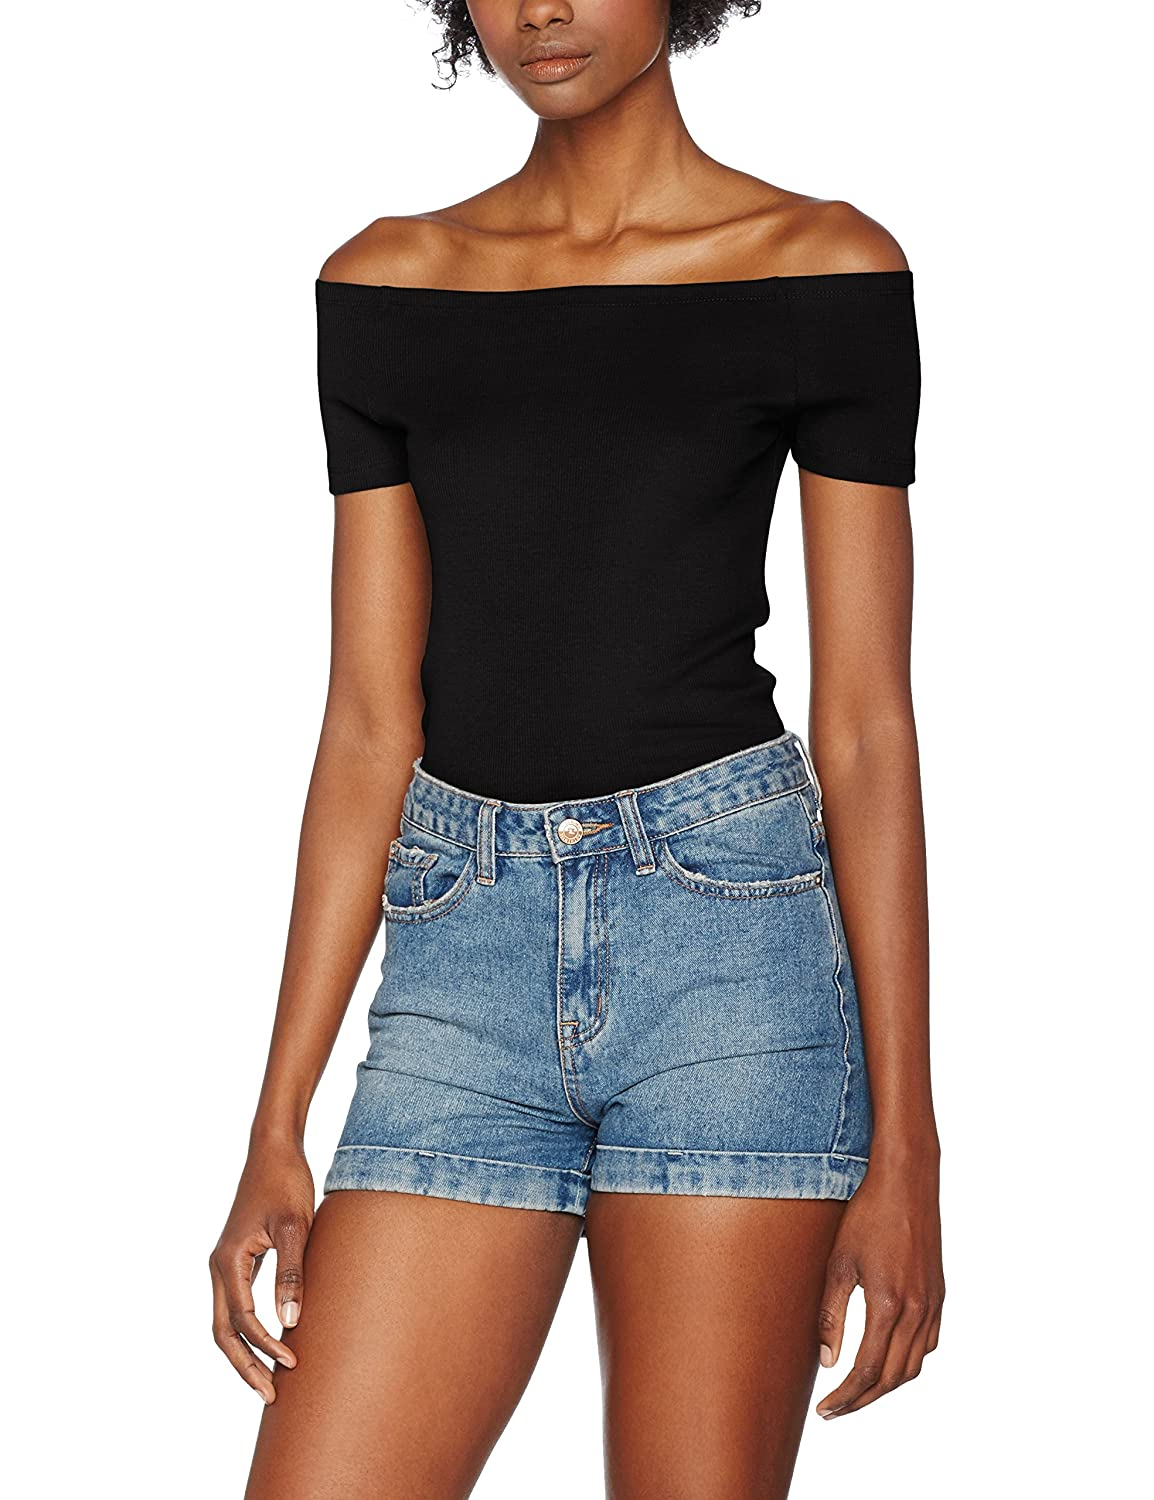 f53e1685 durable service Urban Classics Mujeres Ropa superior / Camiseta Off  Shoulder Rib